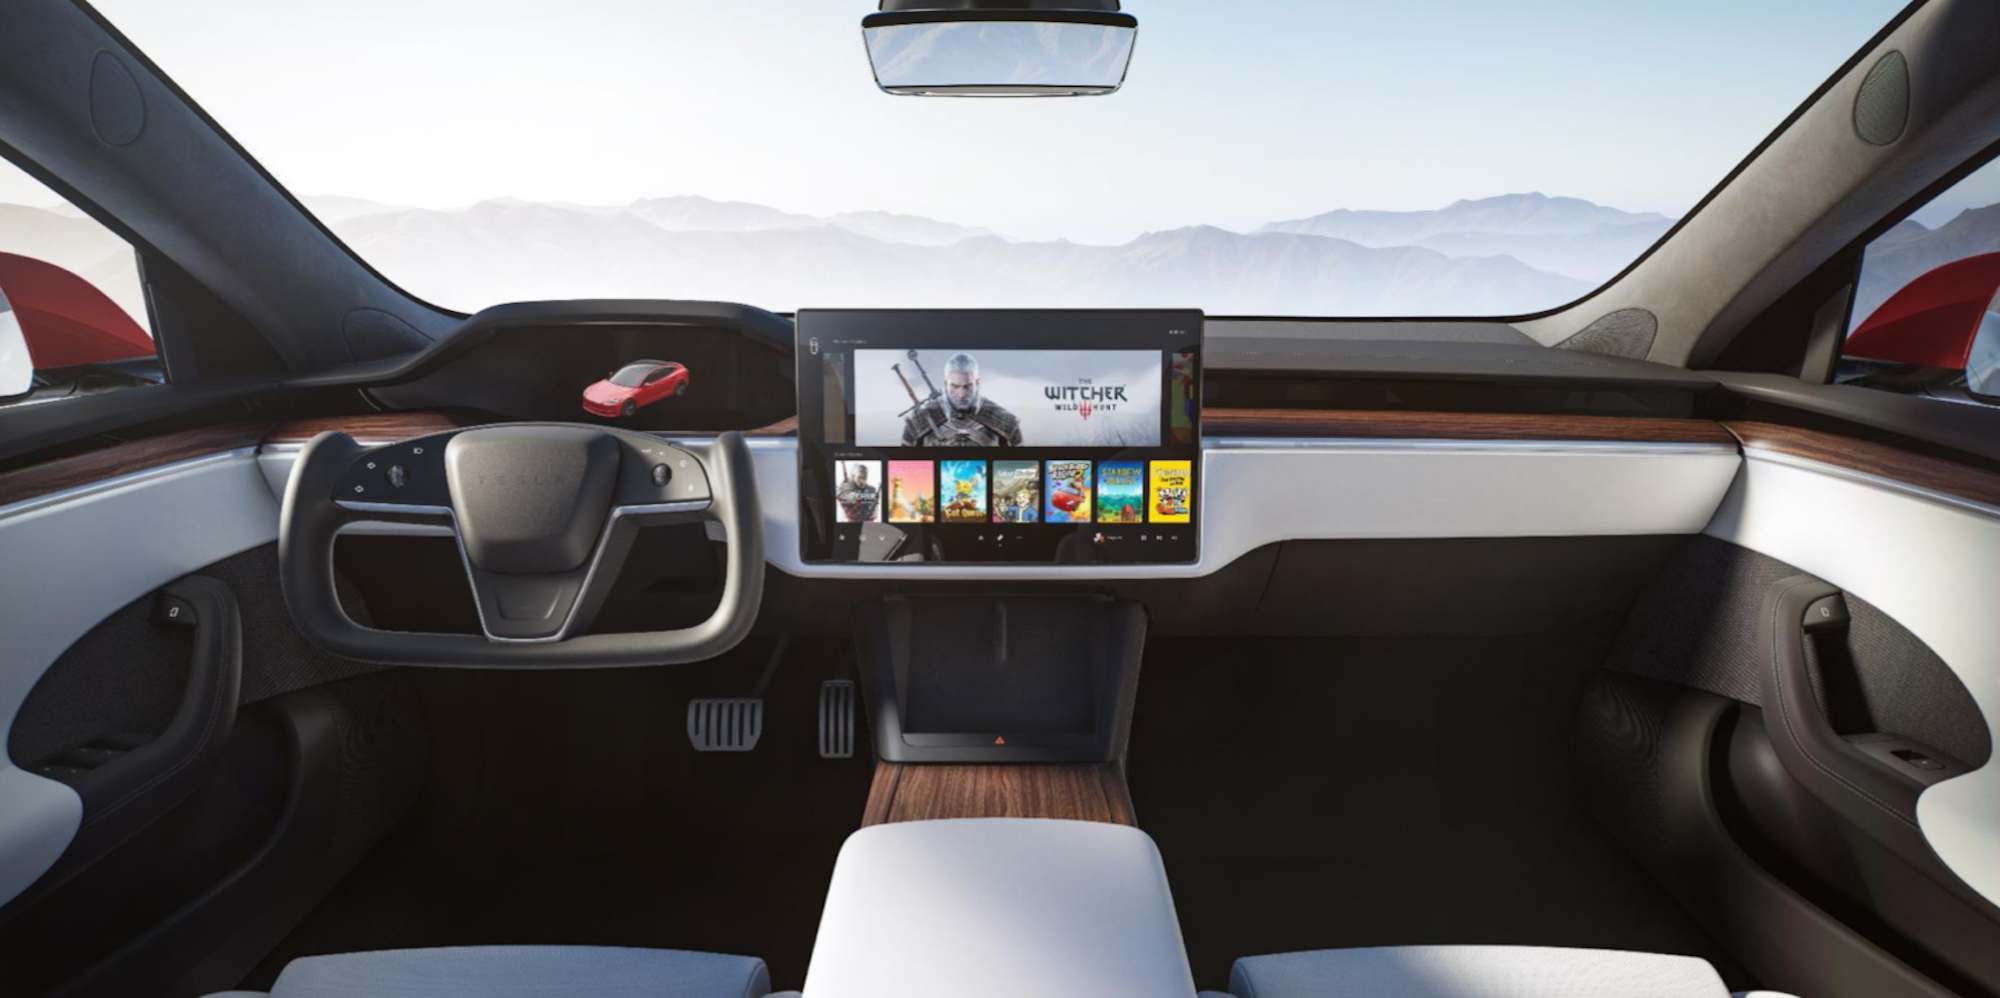 An interior view of the new Tesla Model S, including a yoke-like steering wheel and big center screen.